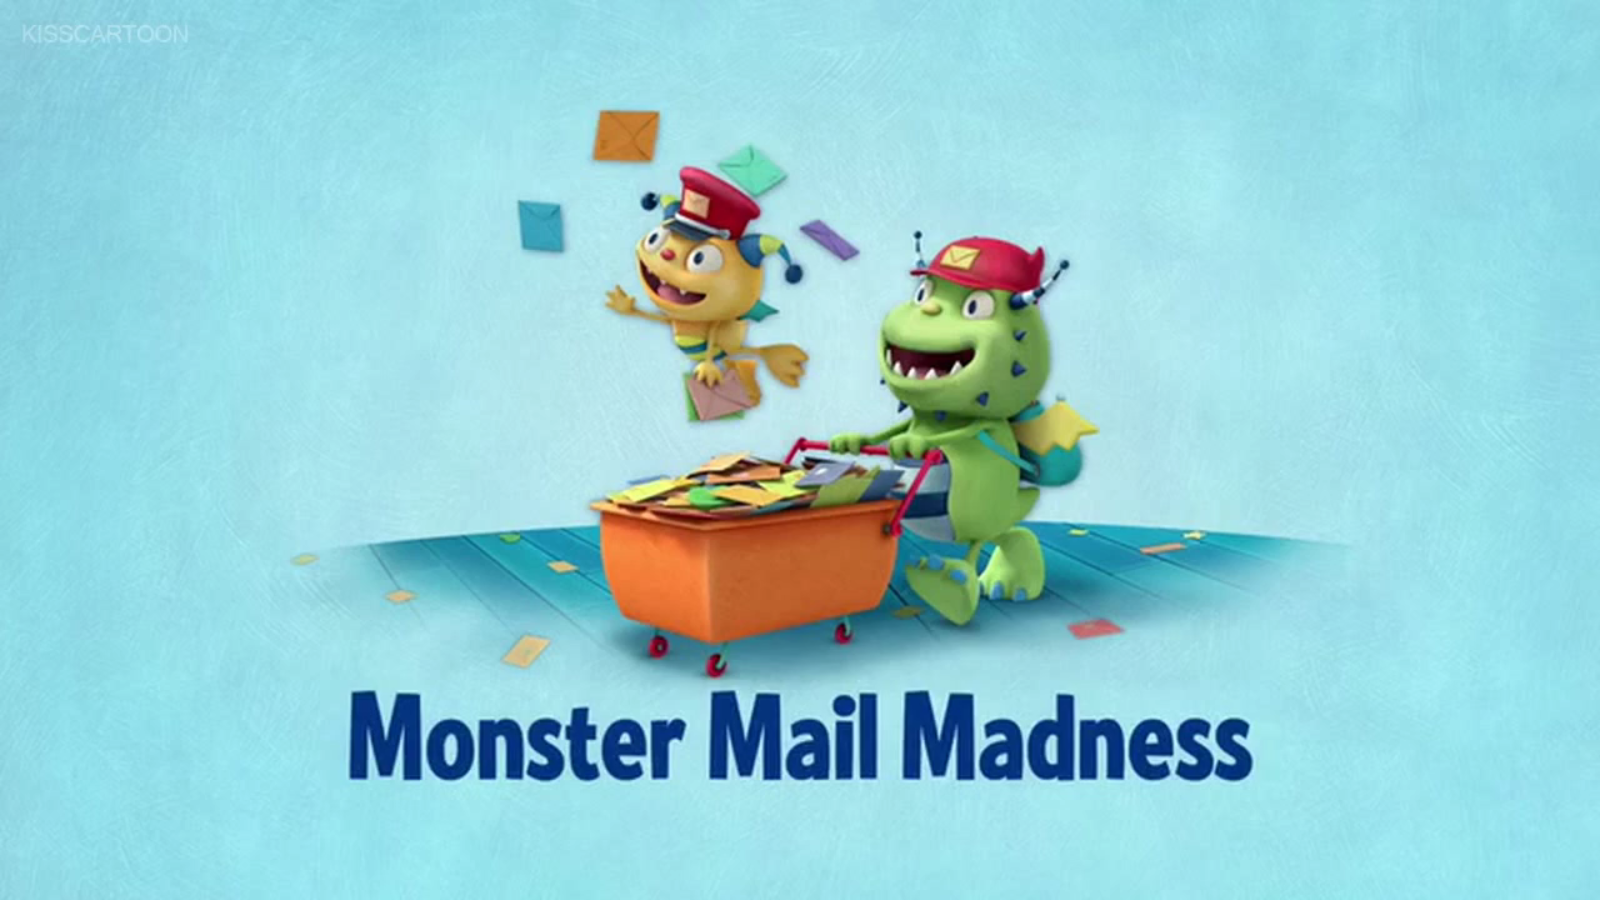 Monster Mail Madness